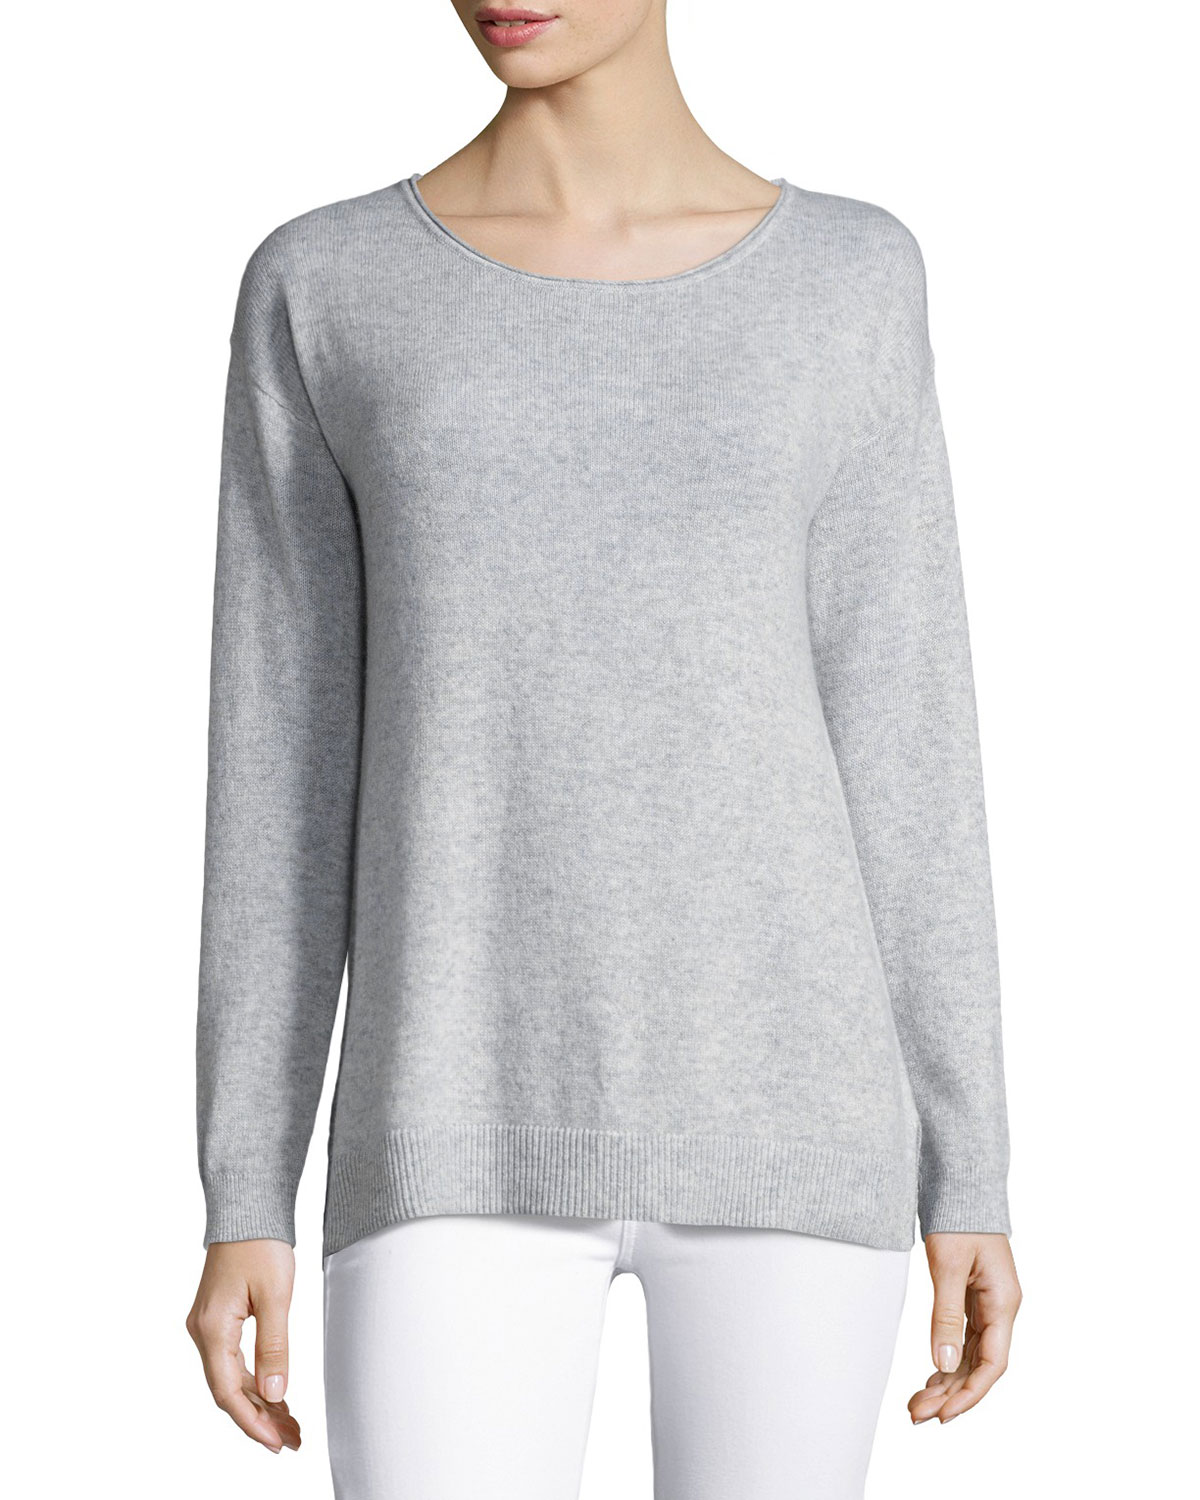 Cashmere Palm Tree Pullover Sweater, Gray